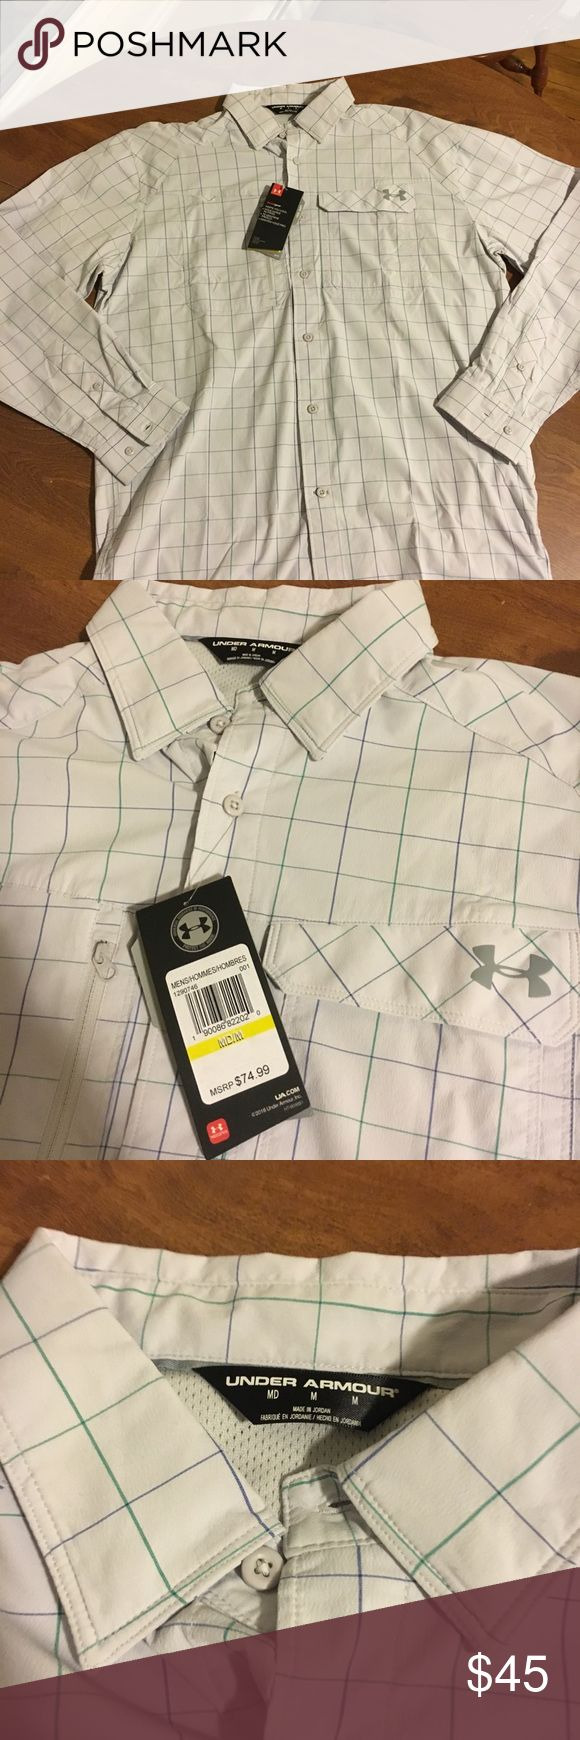 Under Armour Fish Hunter Long-Sleeve Plaid Shirt New With Tags Under Armour Hunting/fishing shirt Size medium  Great for staying dry Under Armour Shirts Casual Button Down Shirts